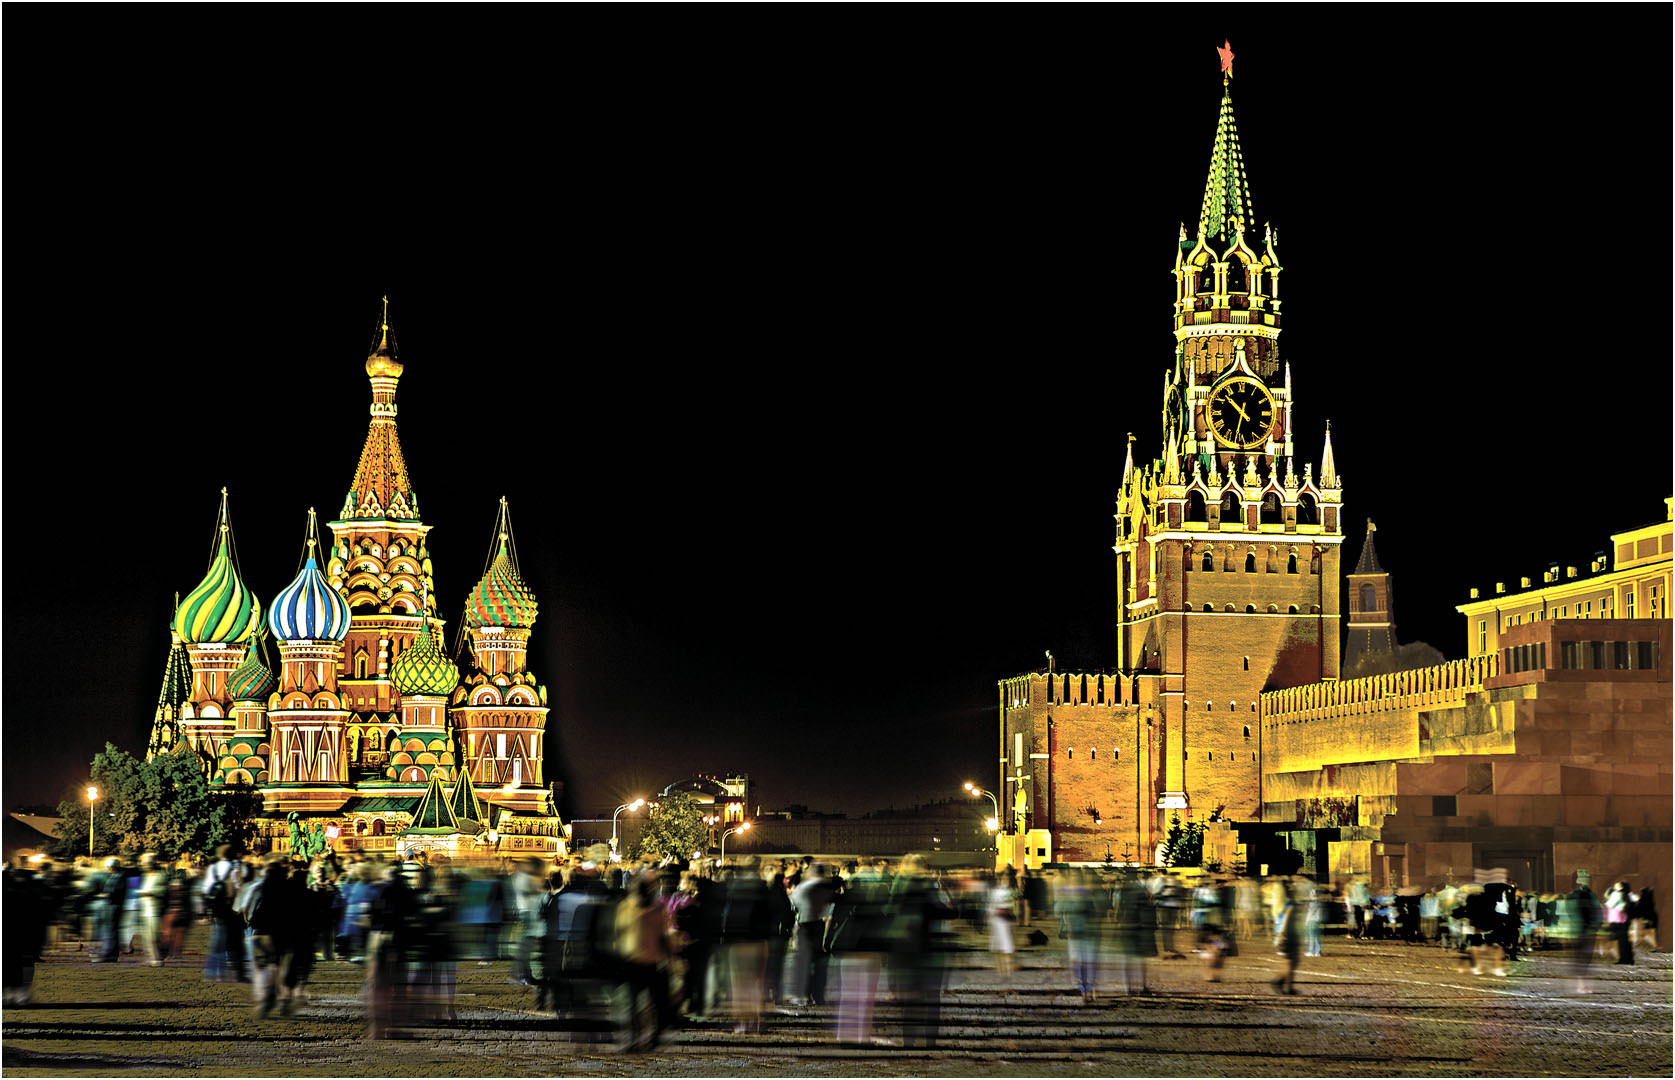 St Basils and the Kremlin